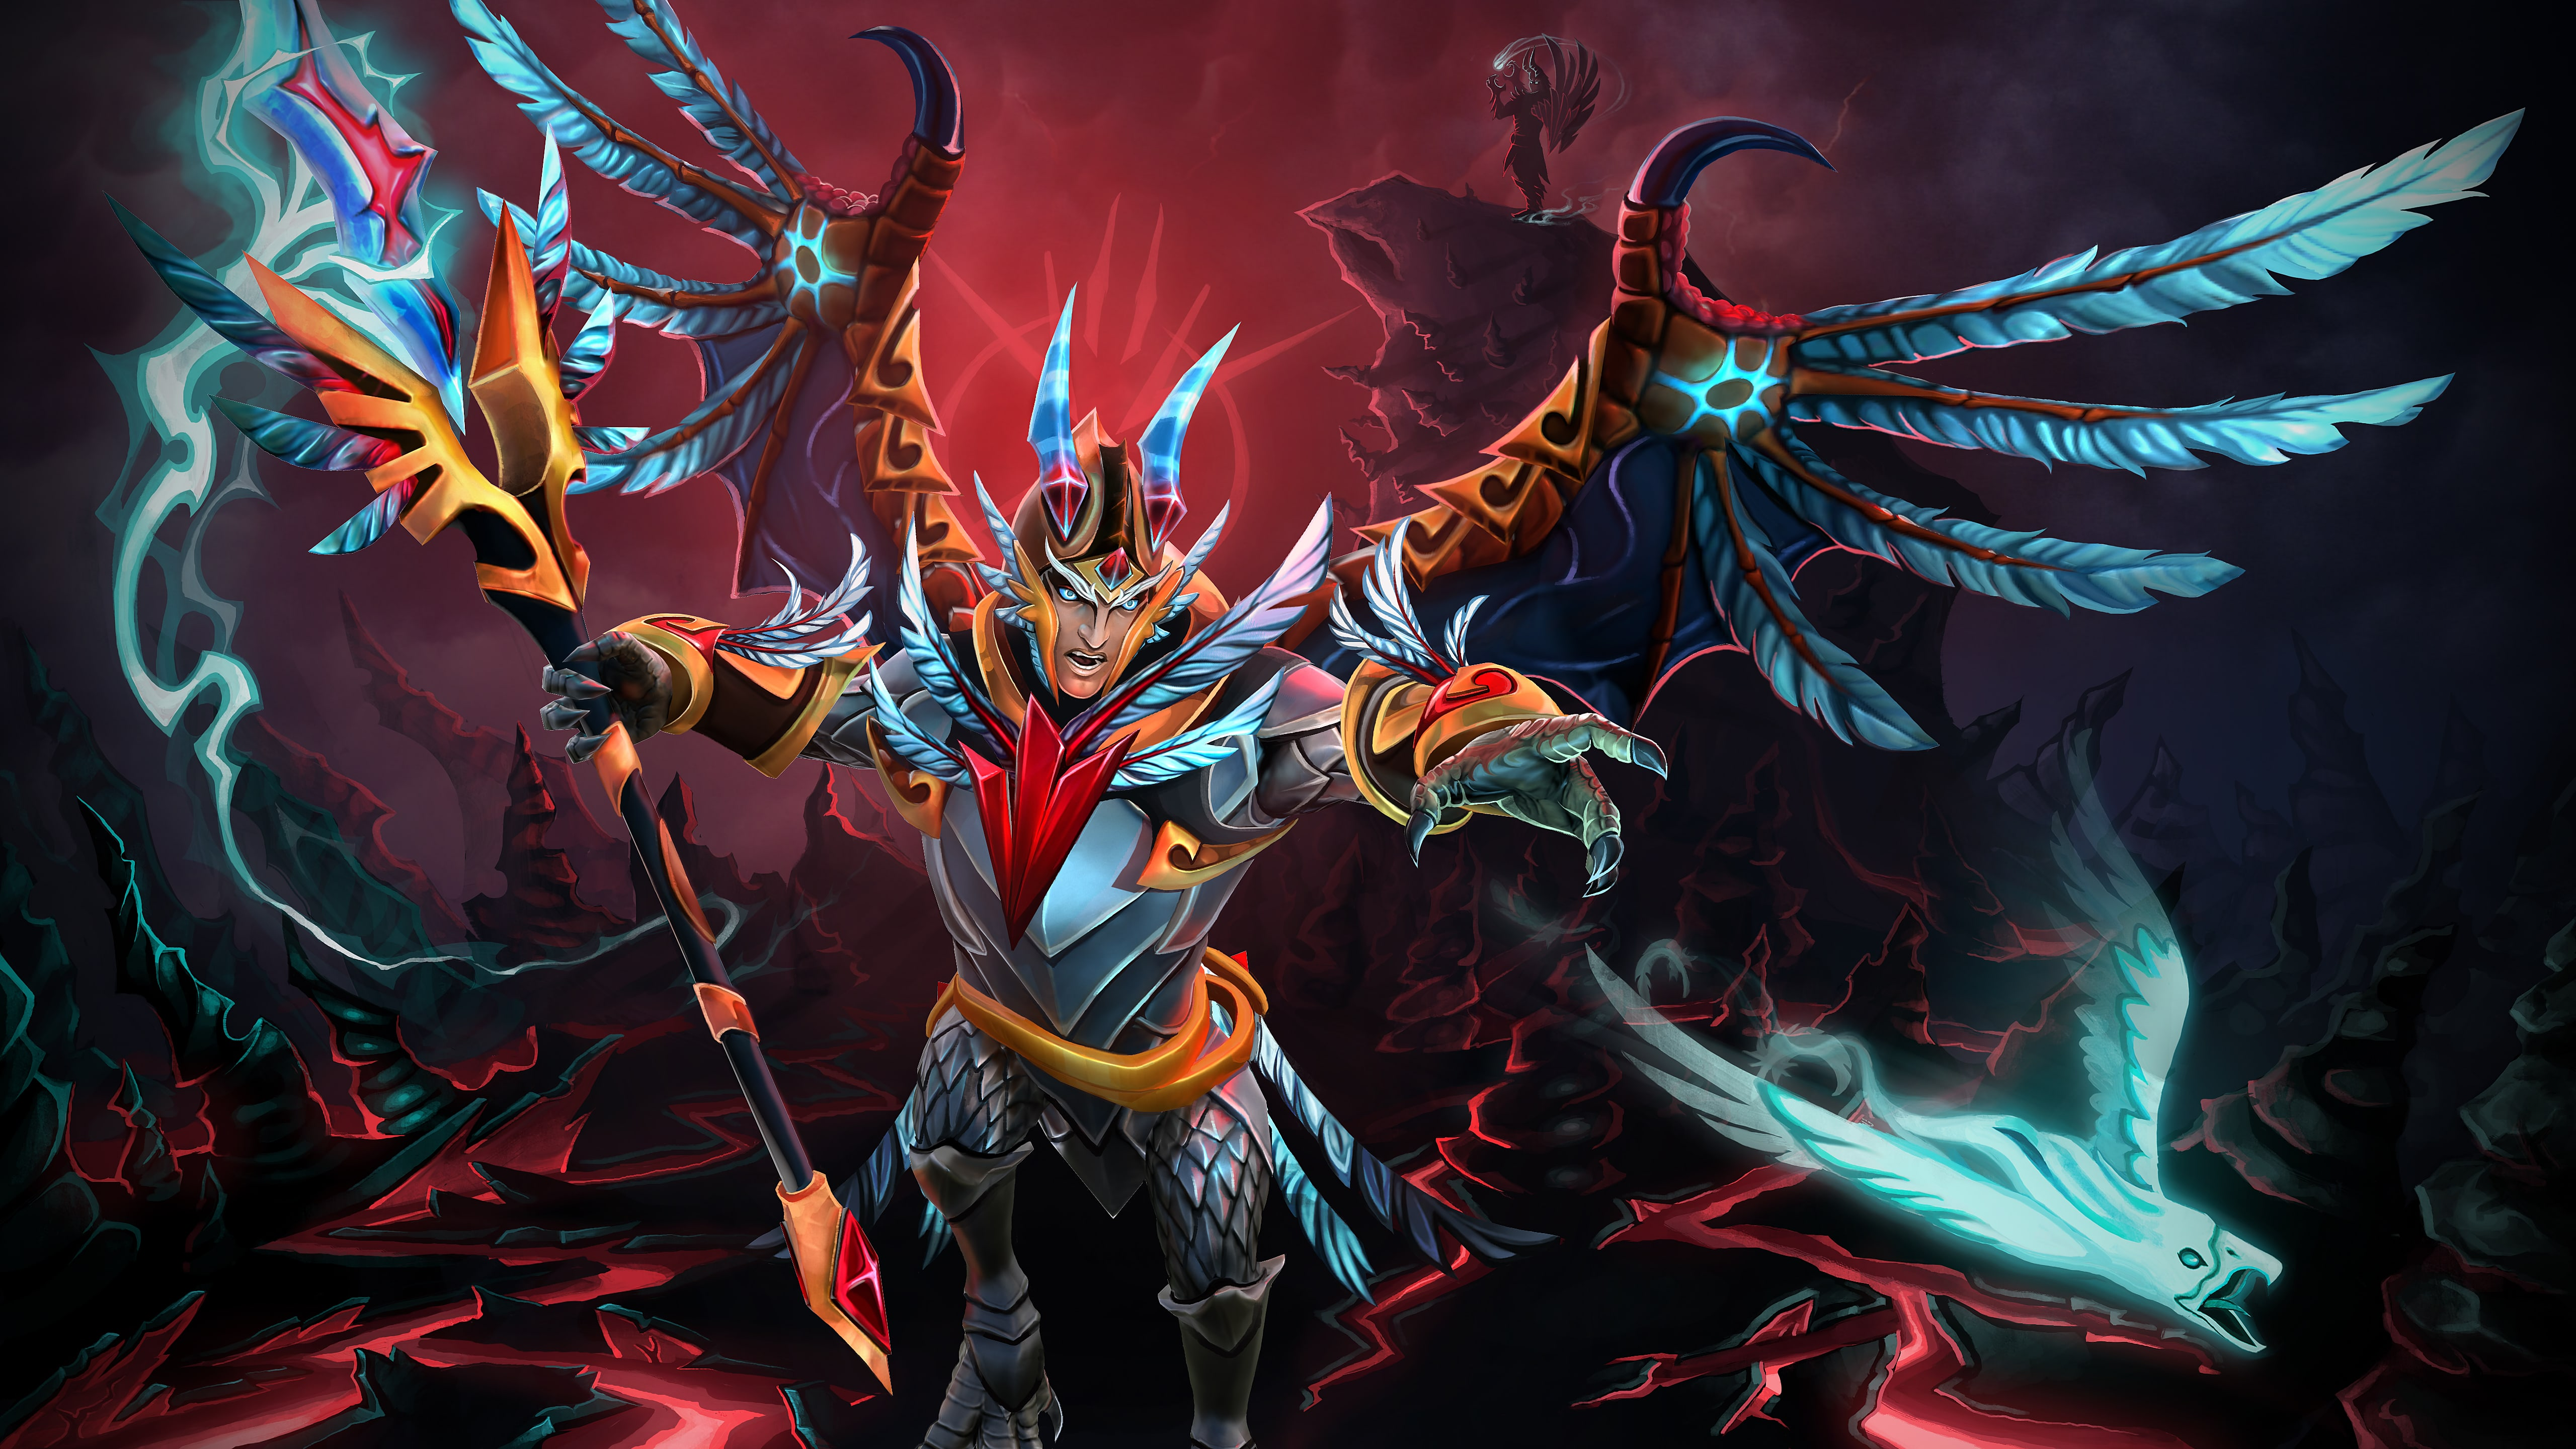 Dota2 : Skywrath Mage full hd wallpapers